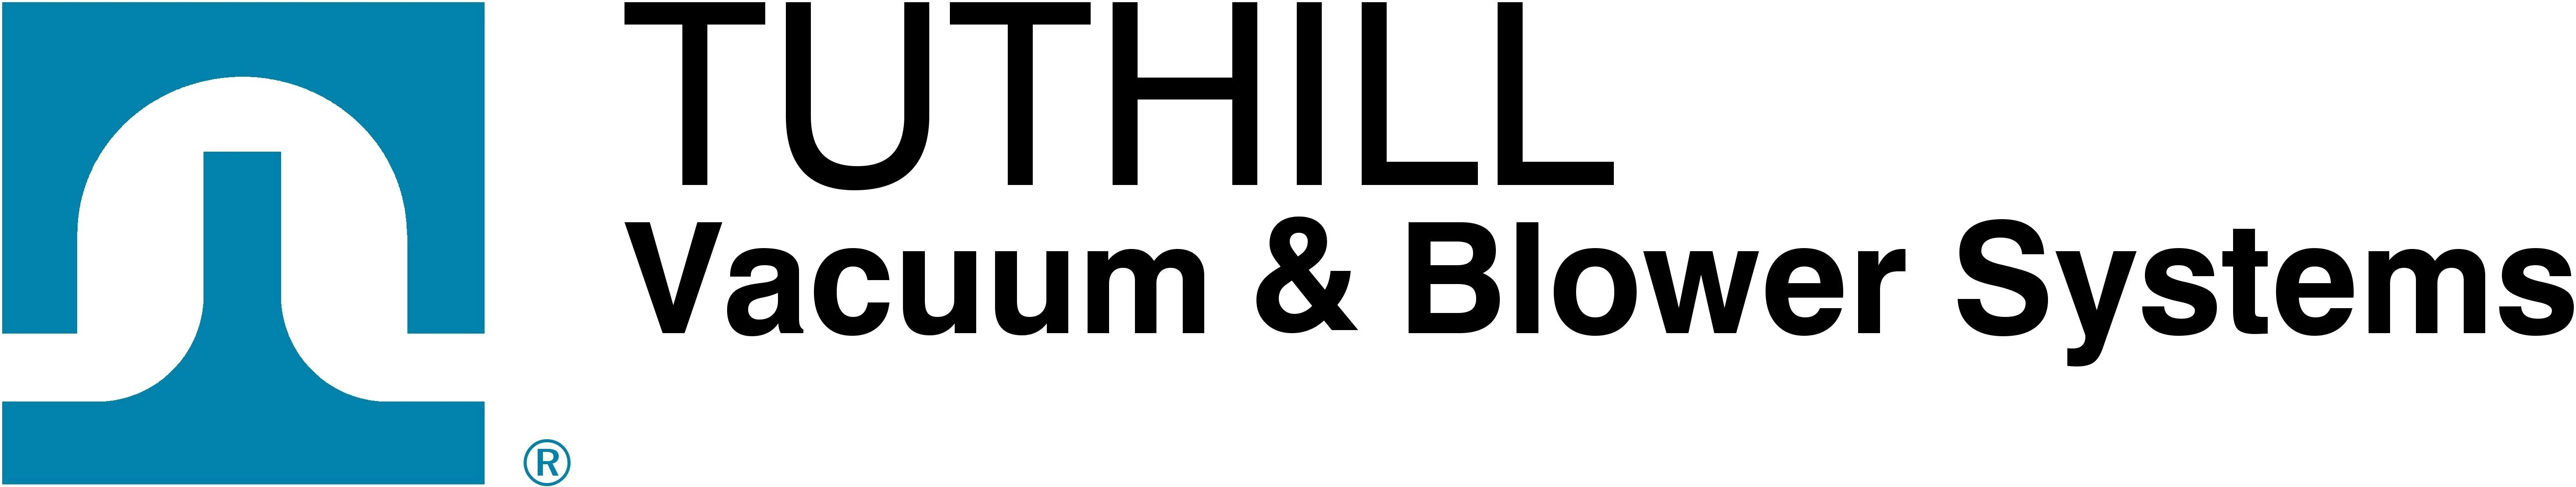 Tuthill Vaccum & Blower System